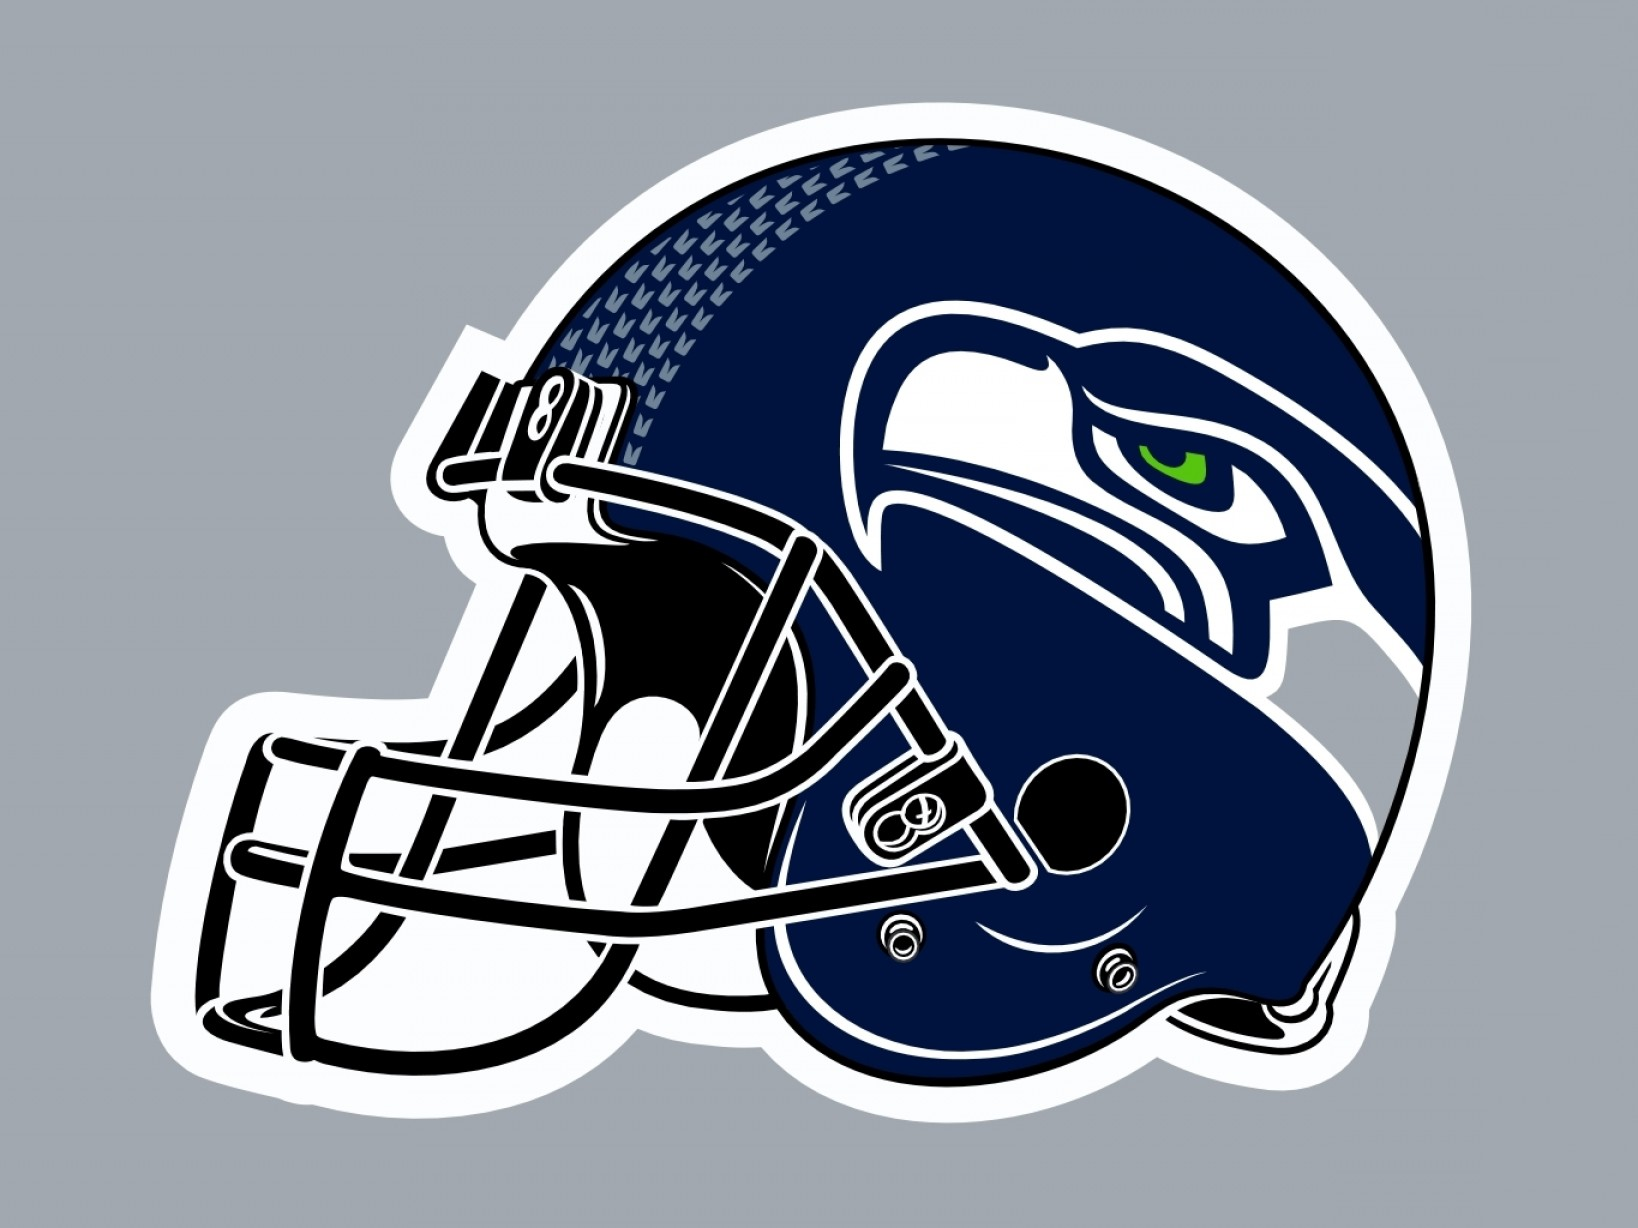 Seahawks Helmet Vector: Seattle Seahawks Helmet Wallpaper